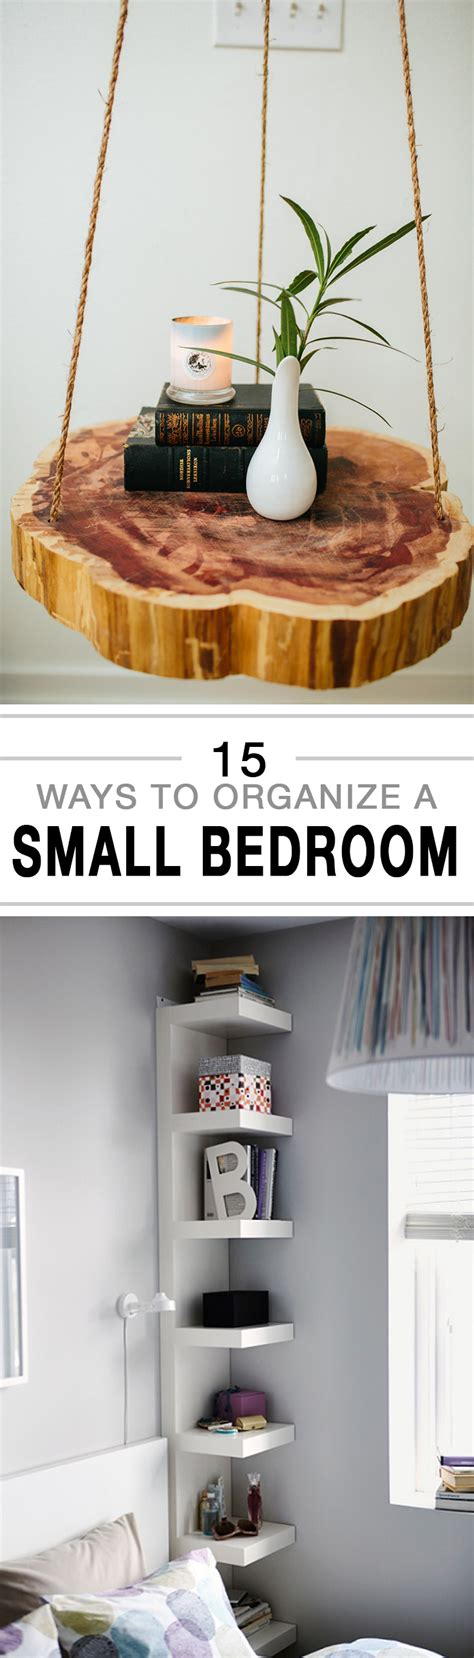 How To Organize Bedroom by 15 Ways To Organize A Small Bedroom